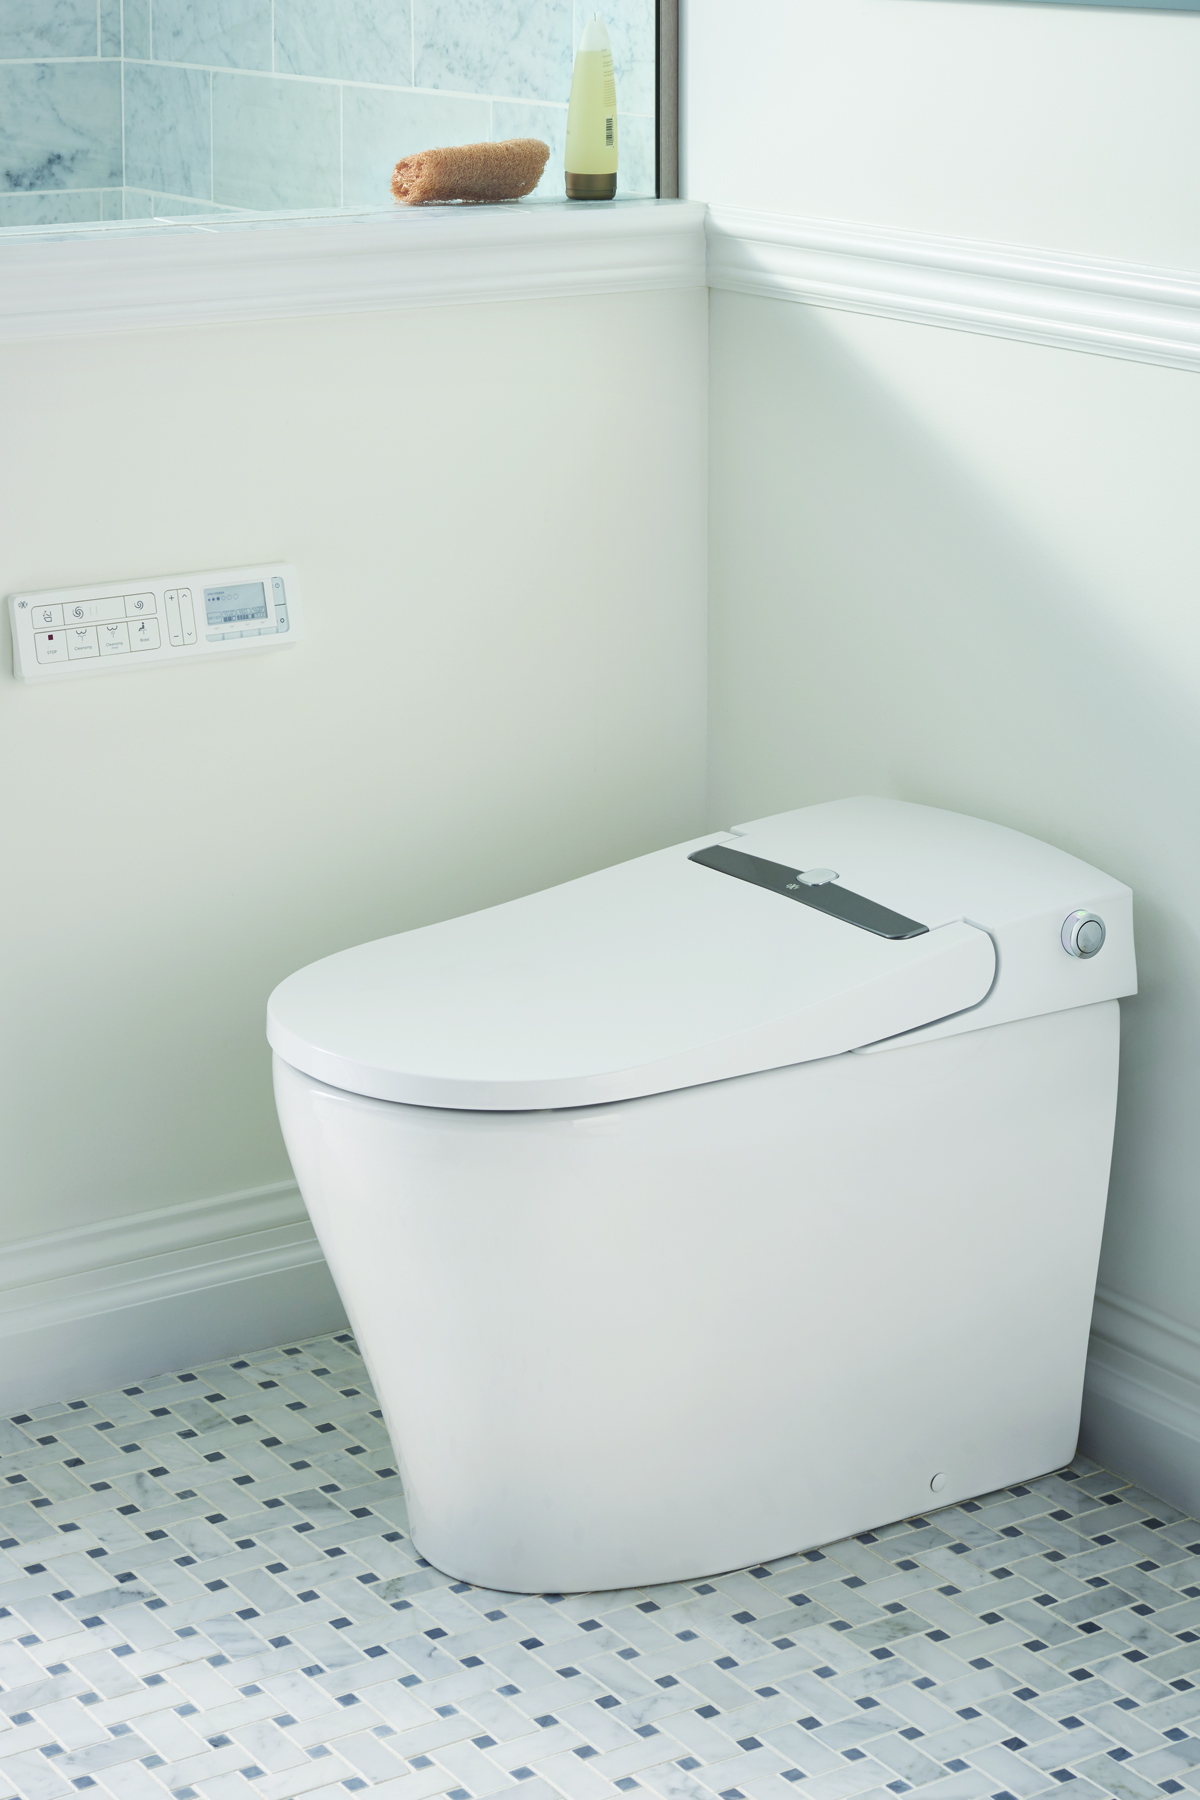 DXV SpaLet Smart Toilets Present New Luxury Features for the ...